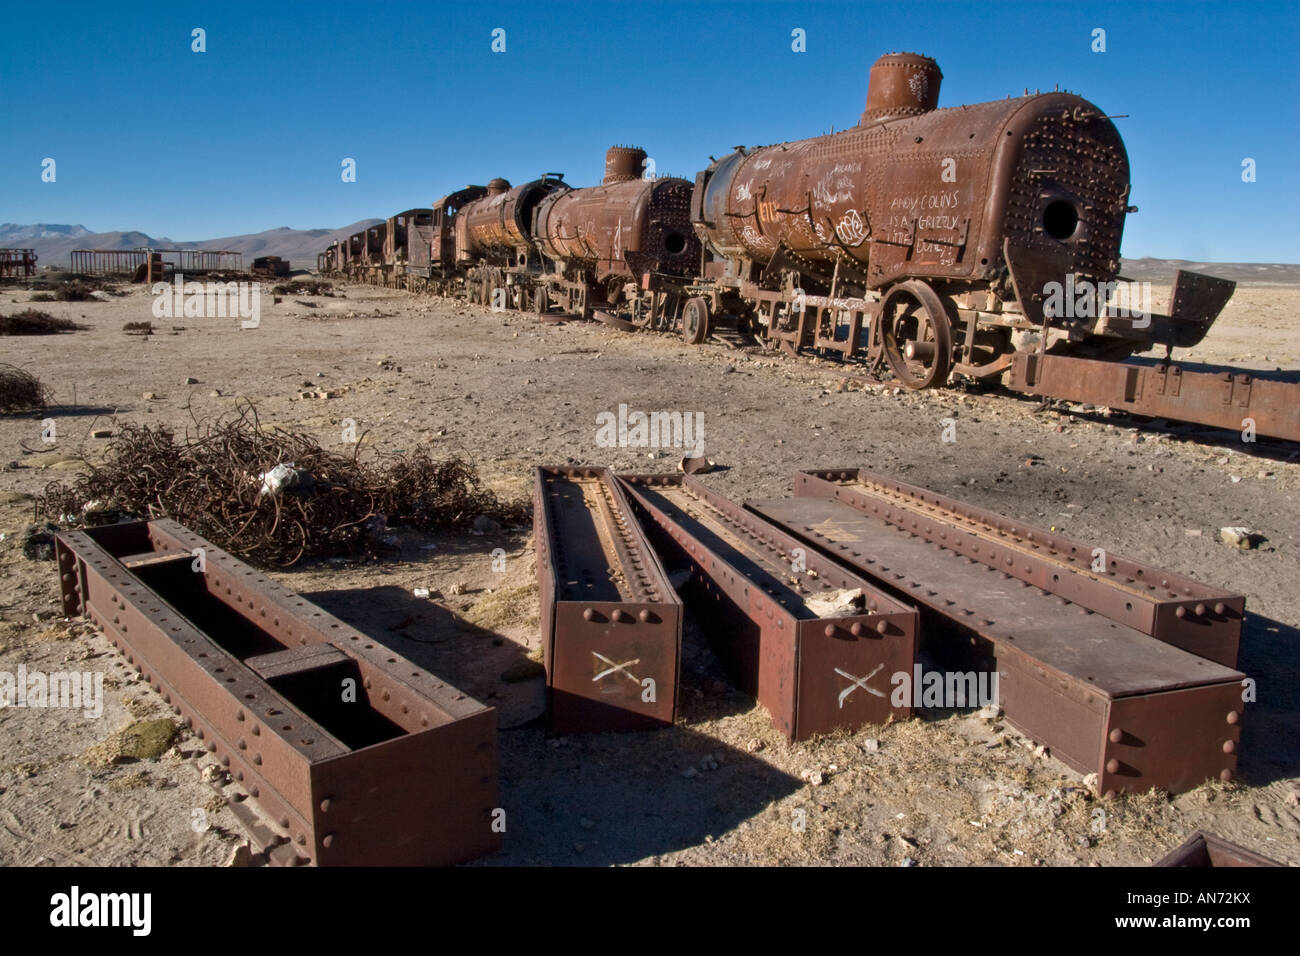 Abandoned trains on the outskirts of Uyuni, SW Bolivia - Stock Image